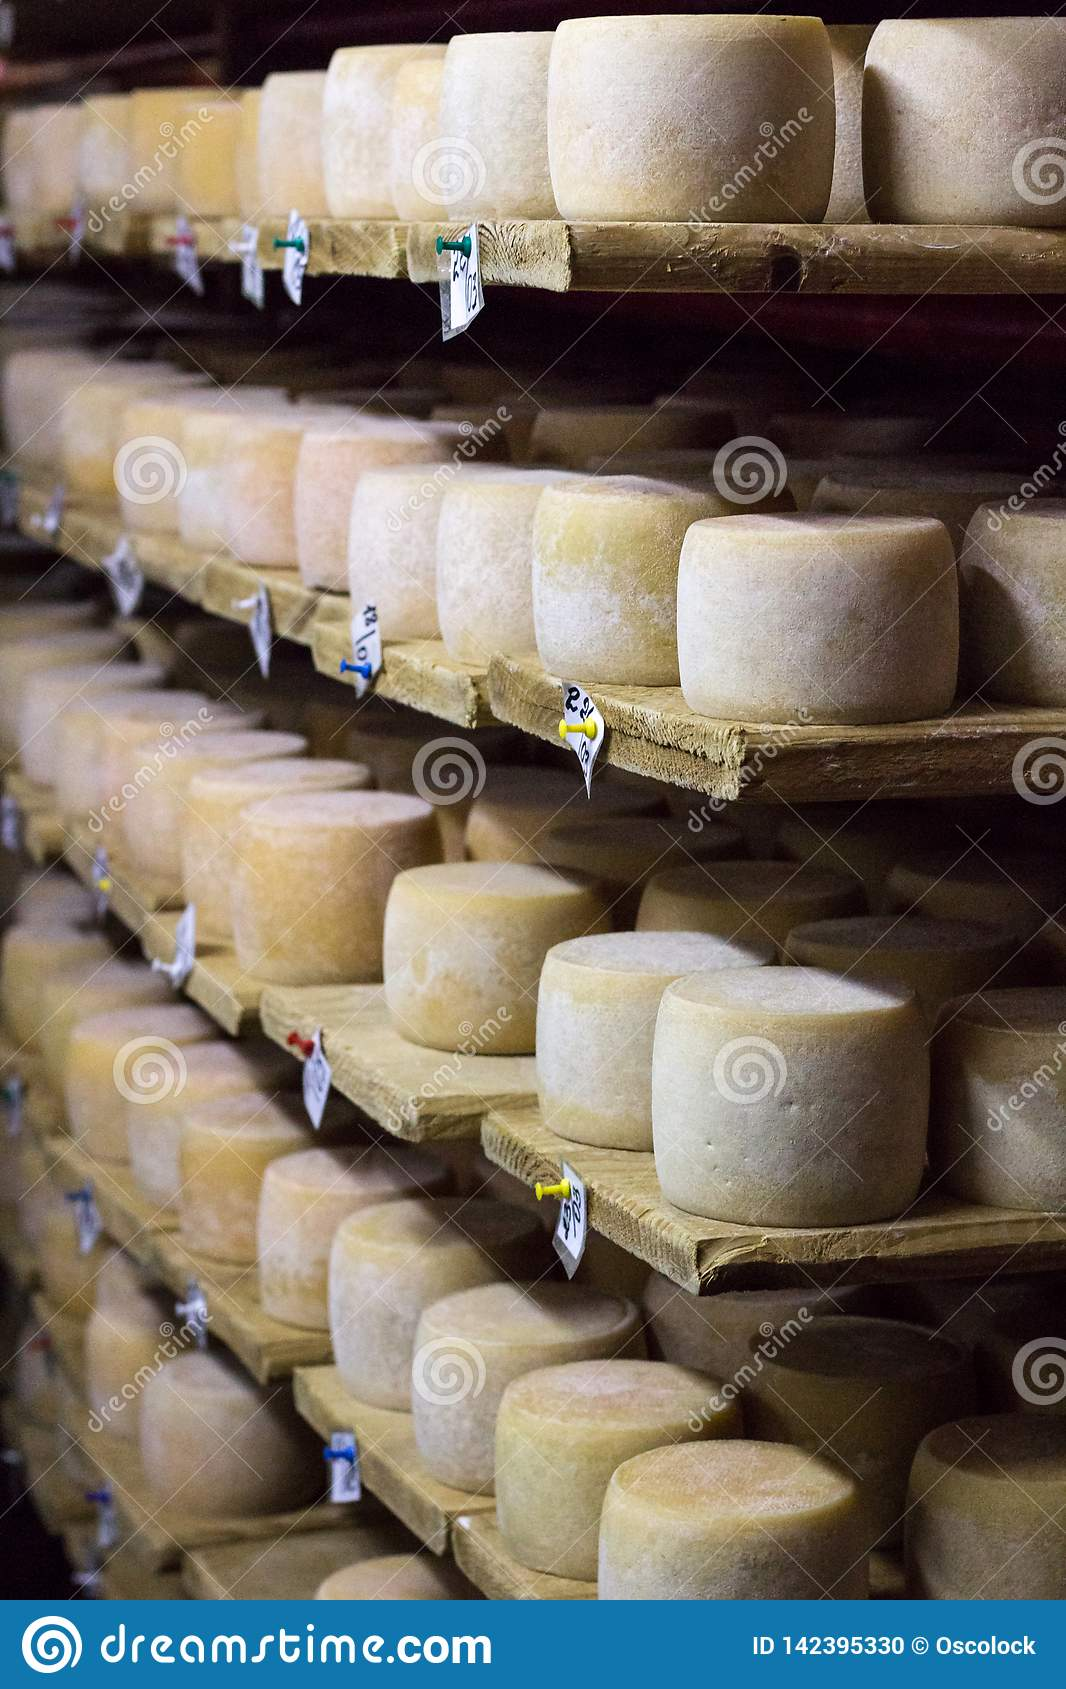 White cheese heads growing ripe on shelves of dairy food production house